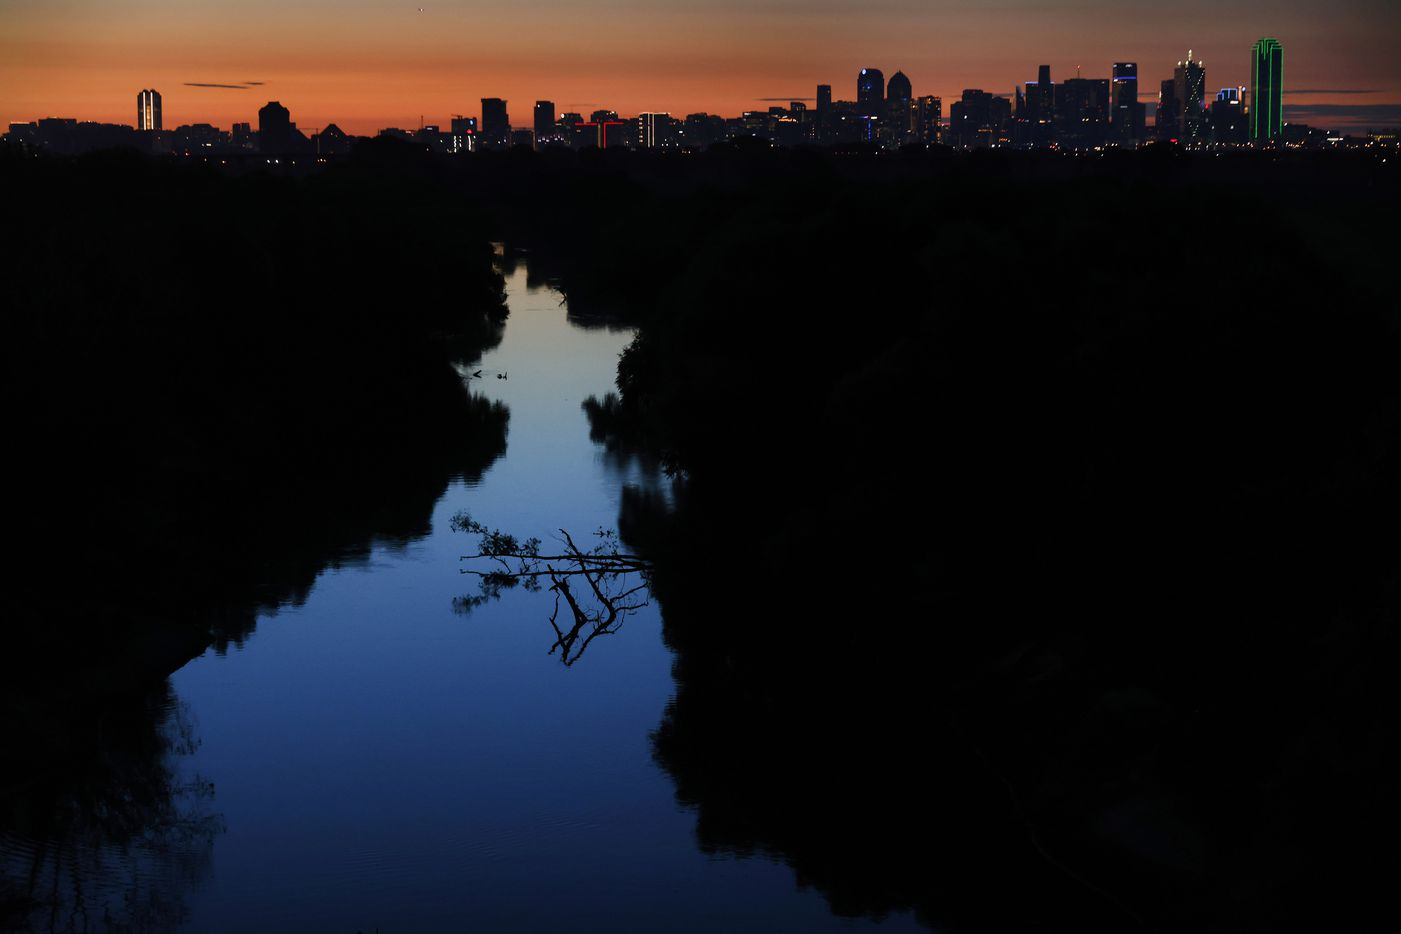 The sun rises over the Trinity River near the Westmoreland bridge early Monday morning, August 30, 2021. The river is known for containing large alligator gar fish. (Tom Fox/The Dallas Morning News)